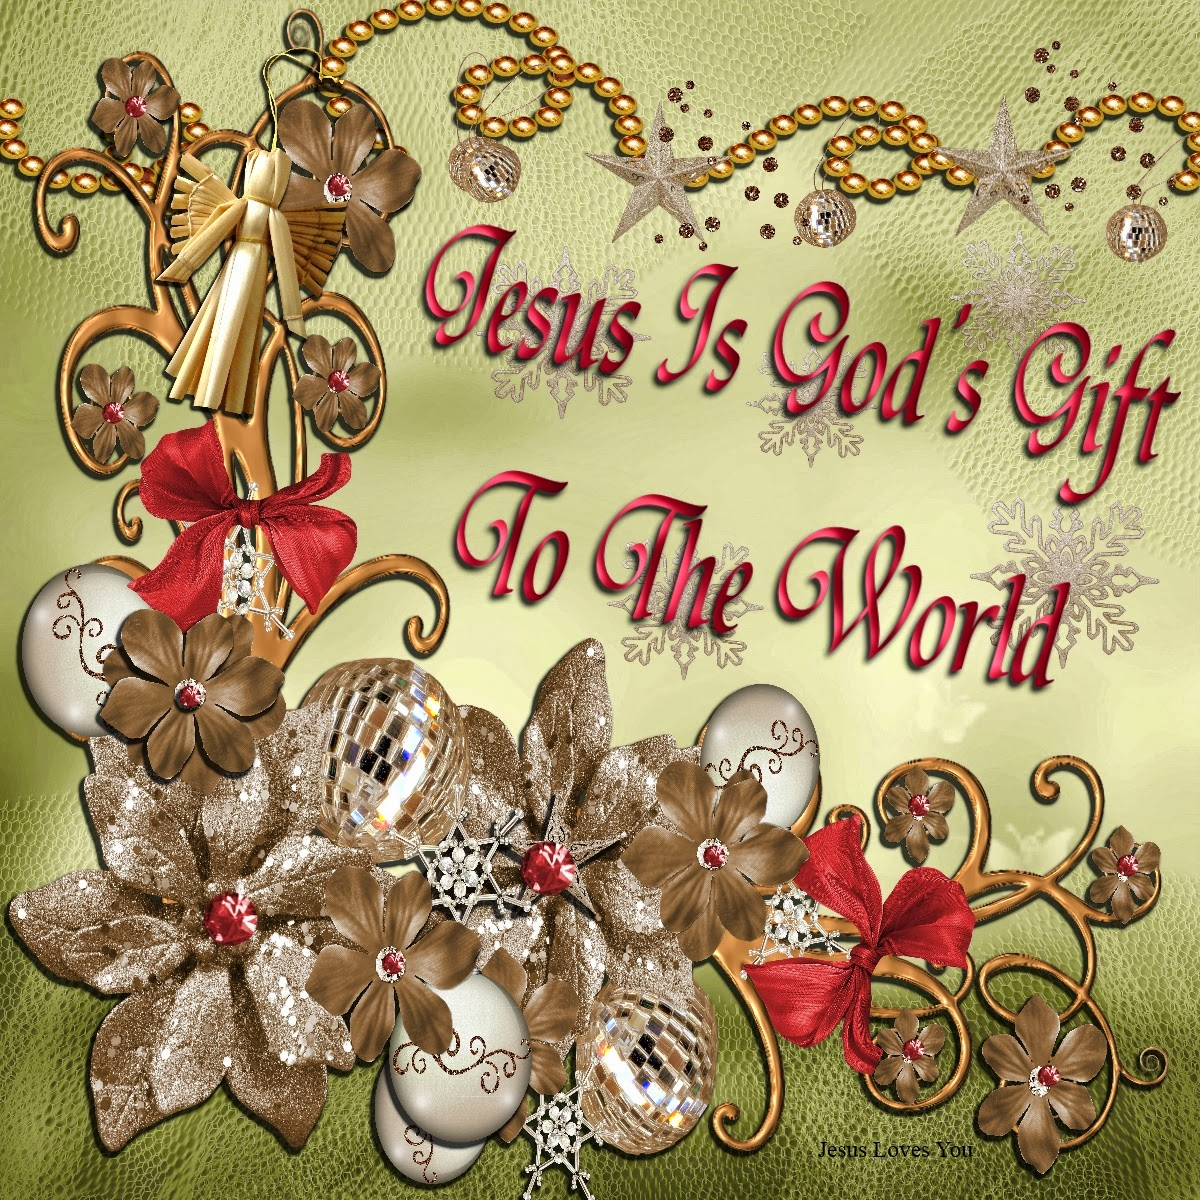 Christian Images In My Treasure Box: Christmas Quotes